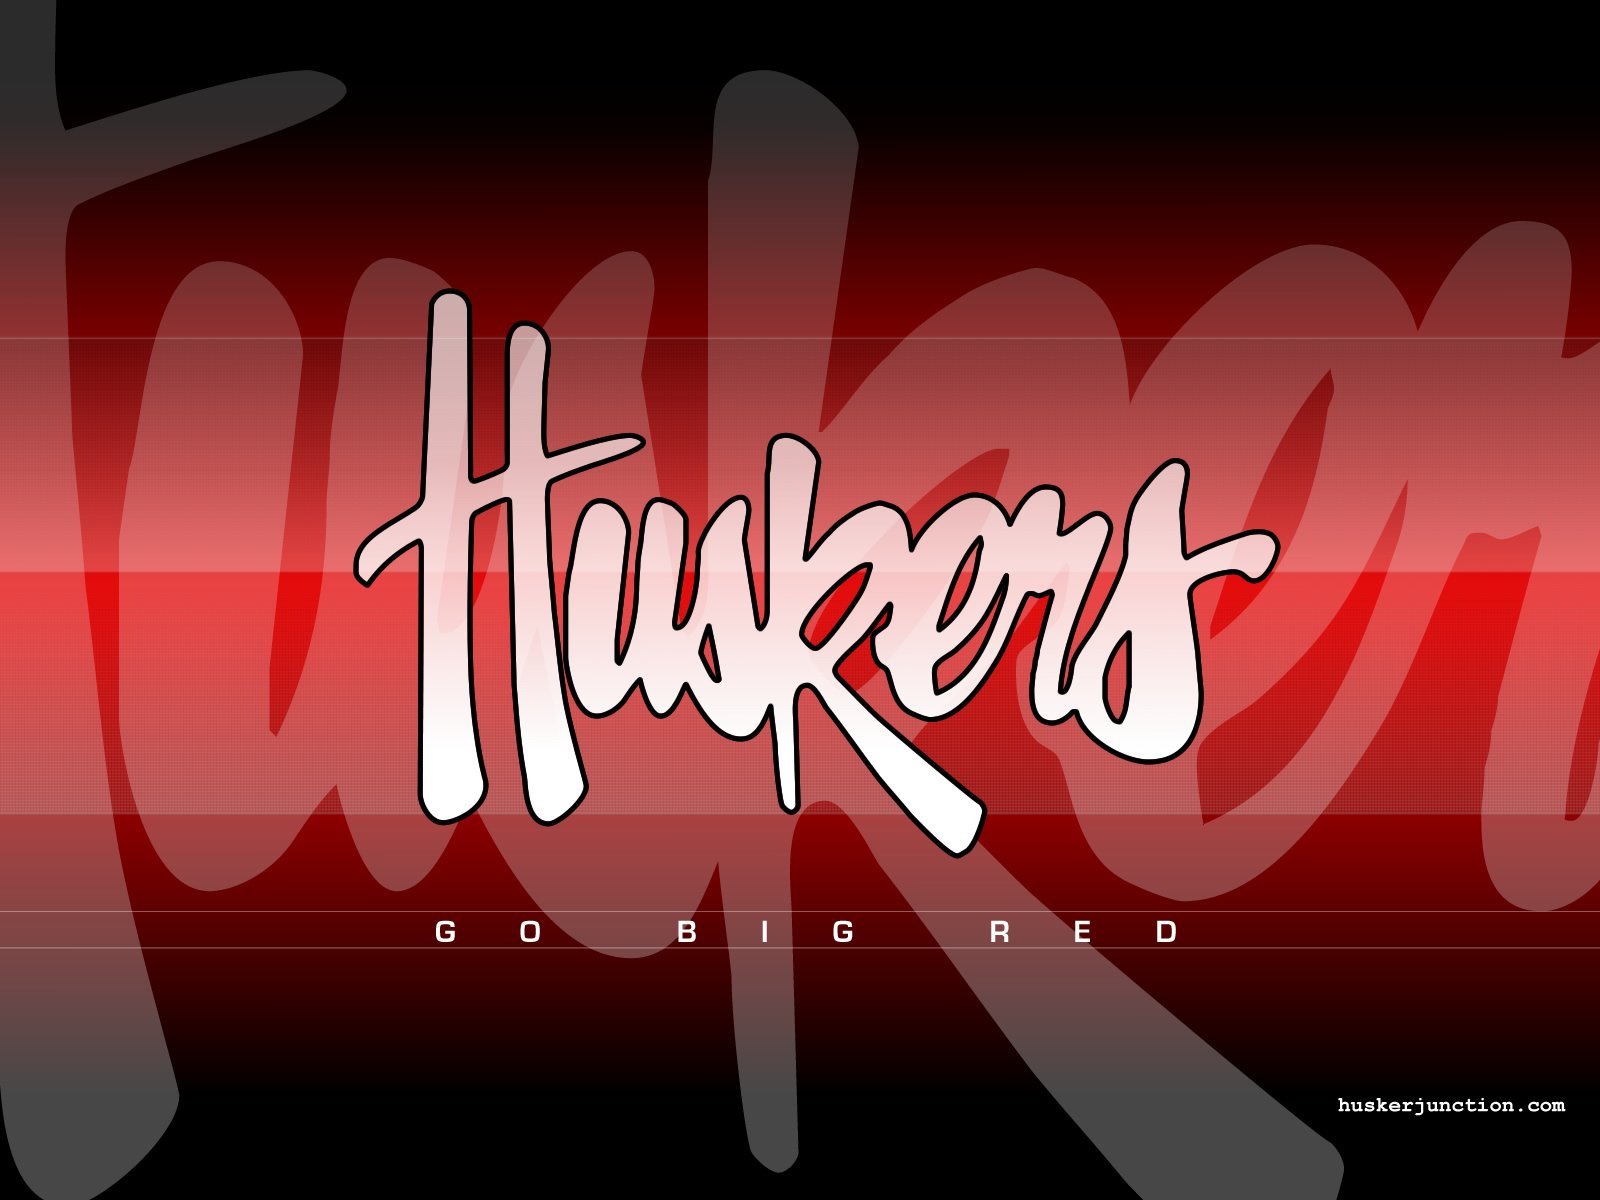 Huskers Go Big Red 1680 x 1050 1600 x 1200 1600x1200